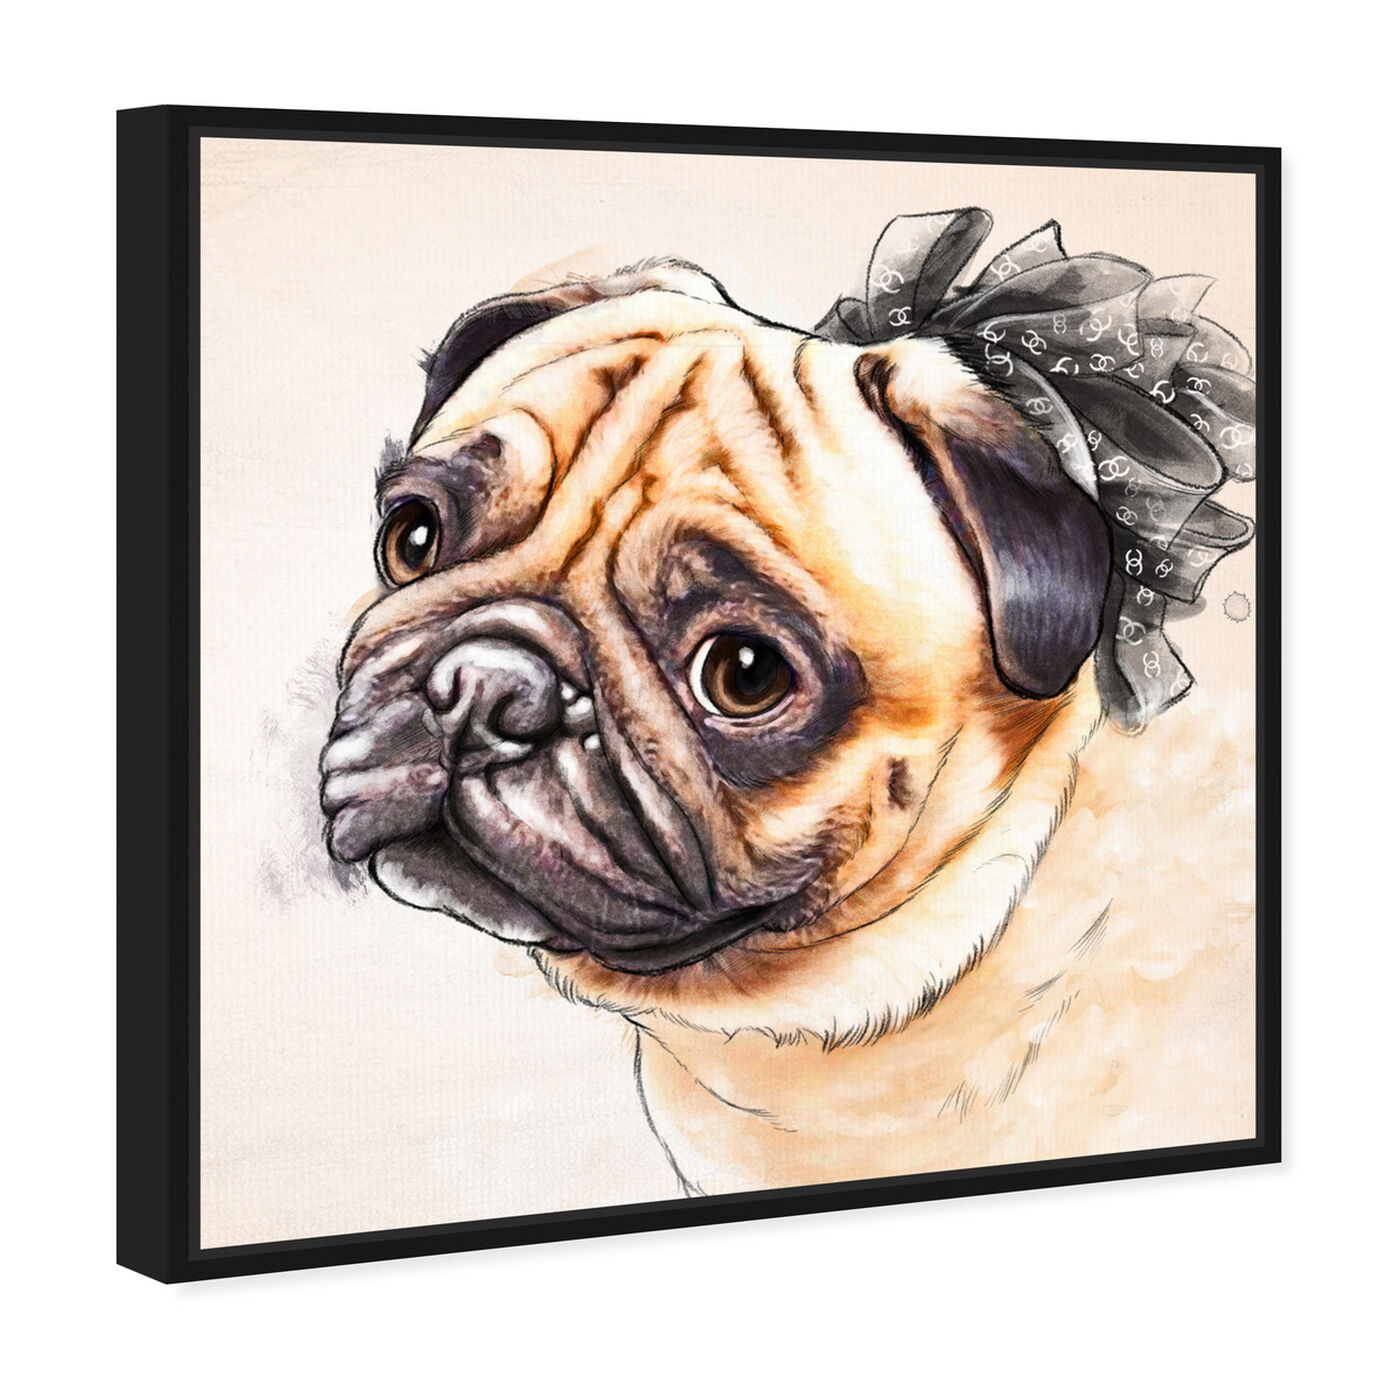 Angled view of Watercolor Pug featuring animals and dogs and puppies art.